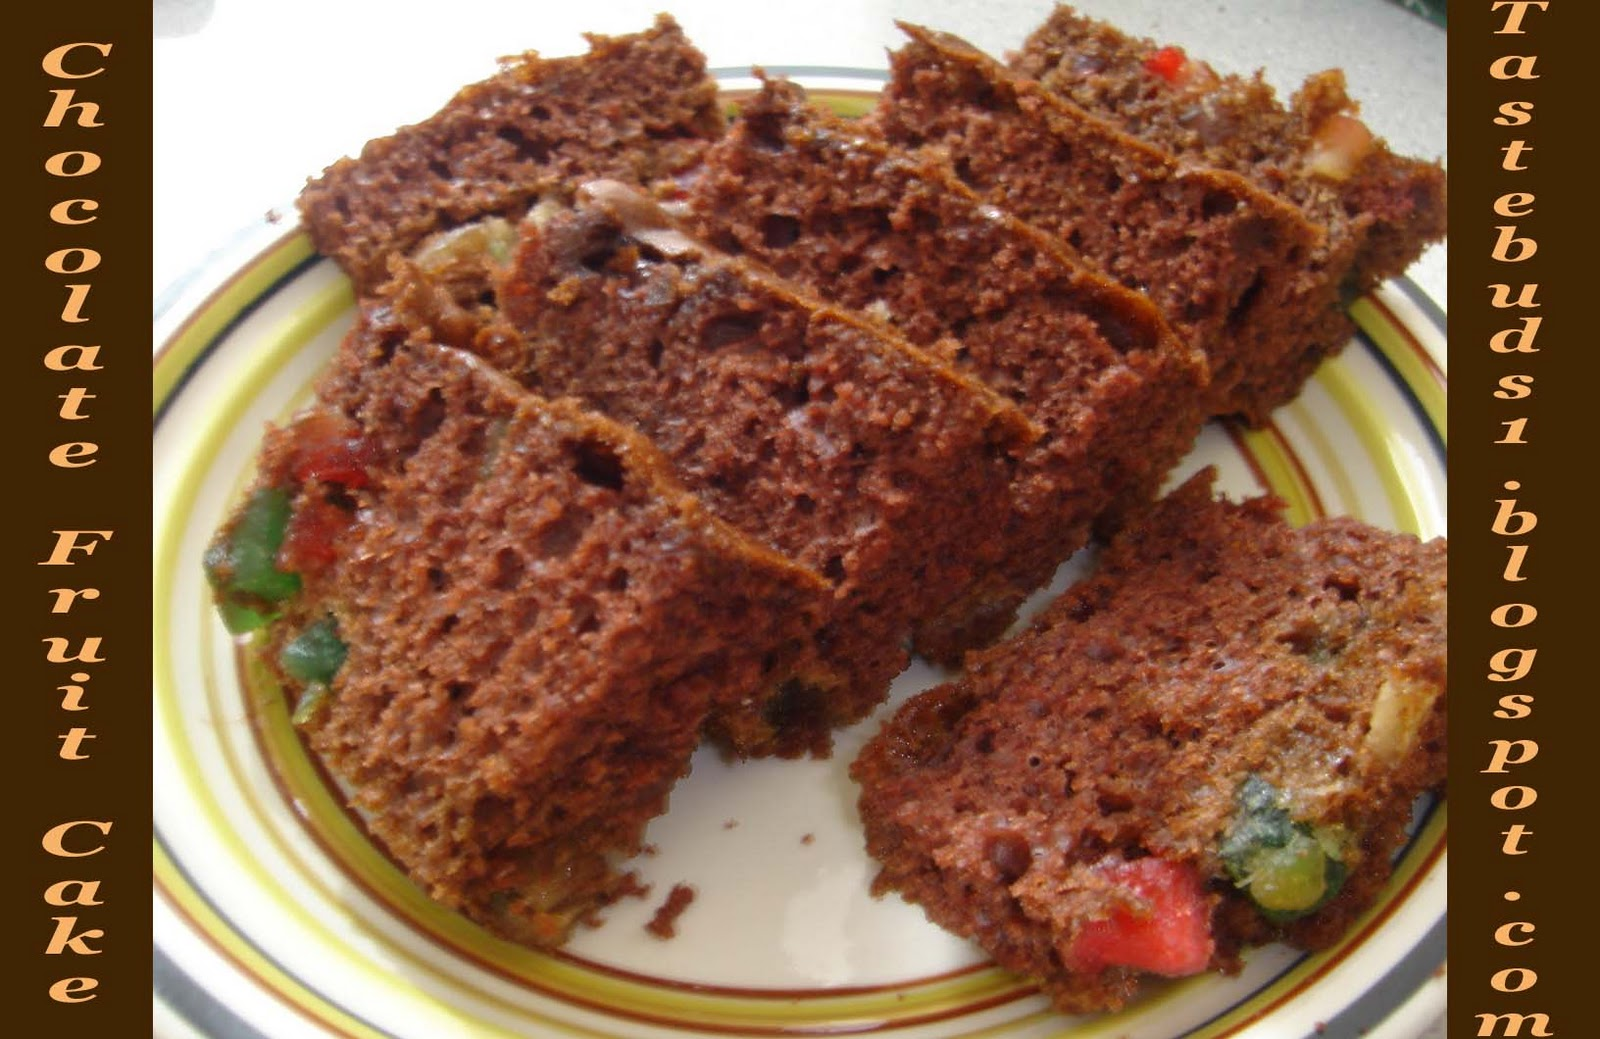 Christmas Special Cake Images : Taste Buds: Christmas Special - Chocolate Fruit Cake